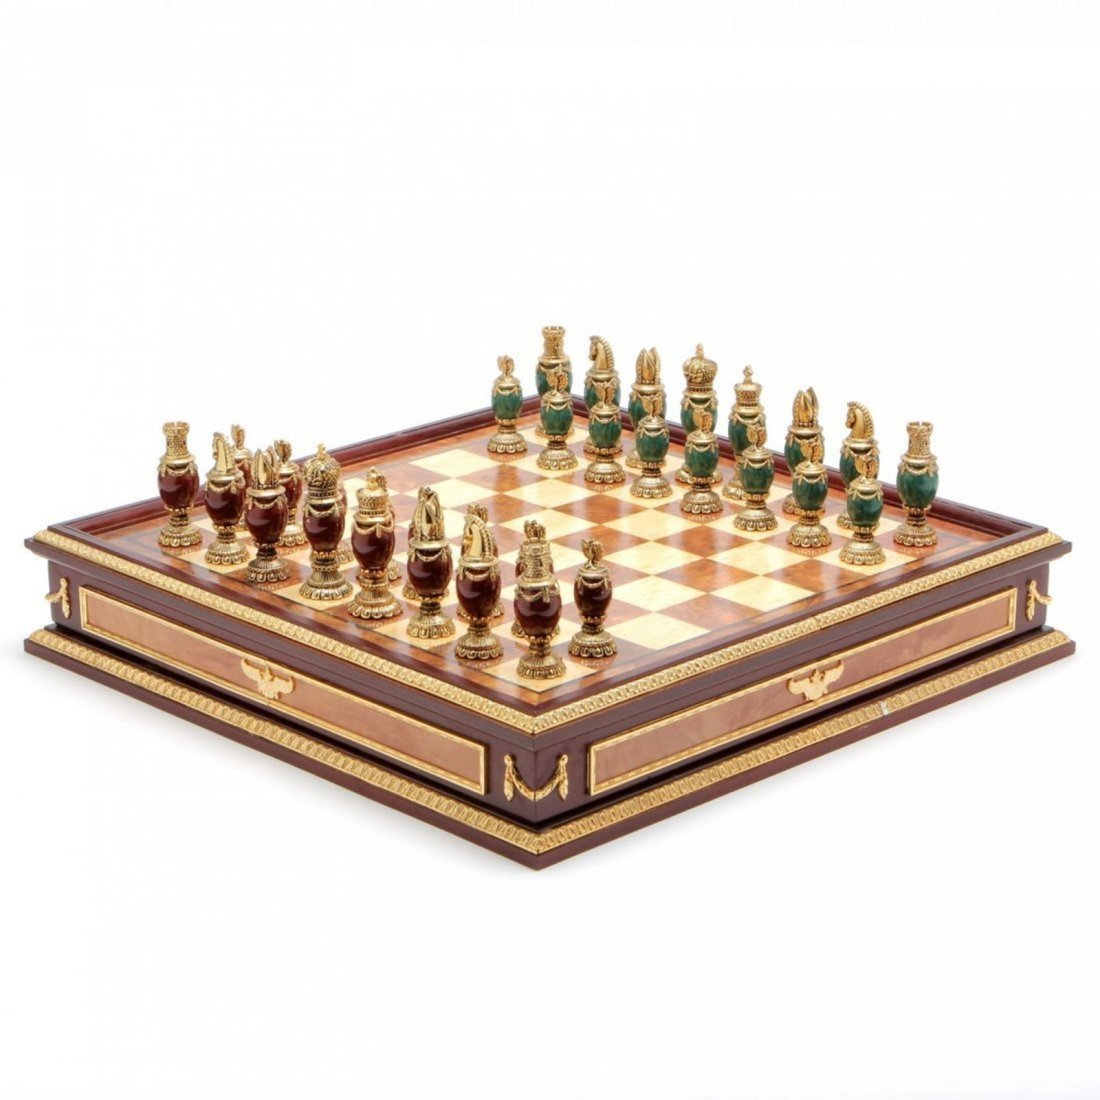 Faberge Imperial Jeweled Chess / Board Limited Edition